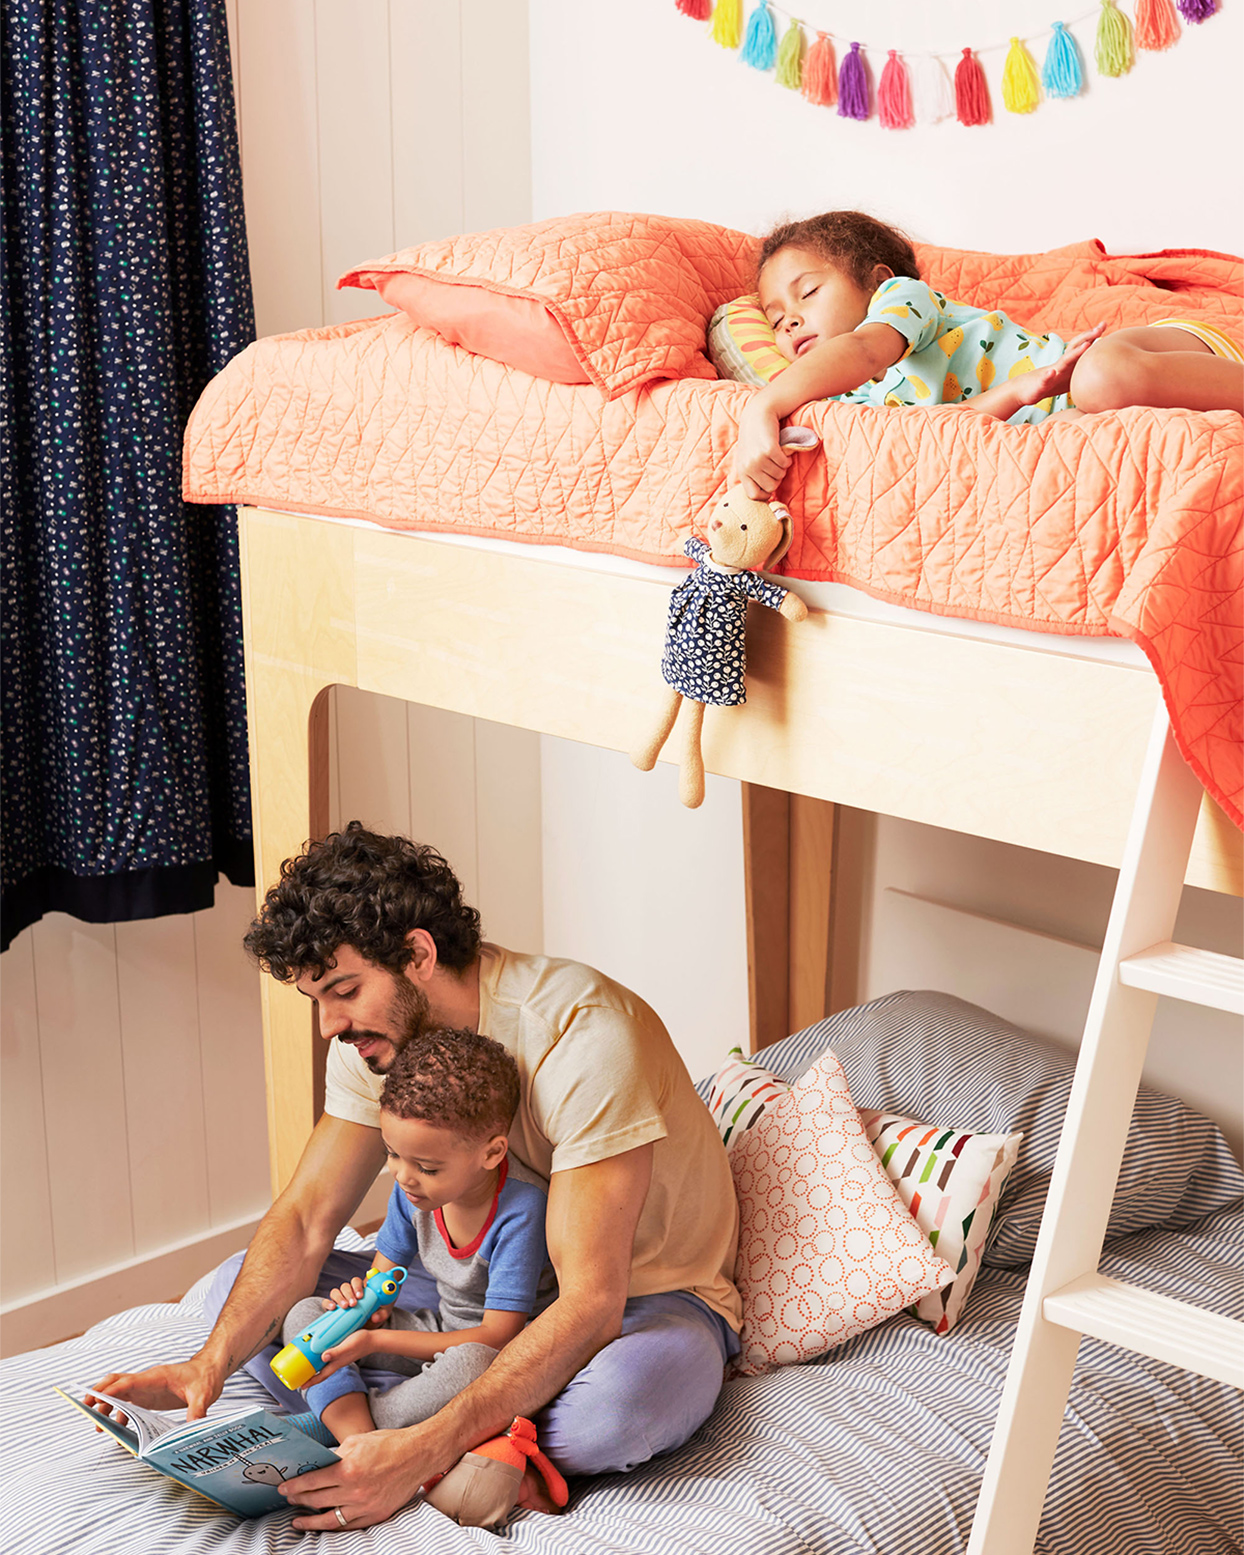 How Do I Get My Child's Grandparents to Follow My Parenting Rules?